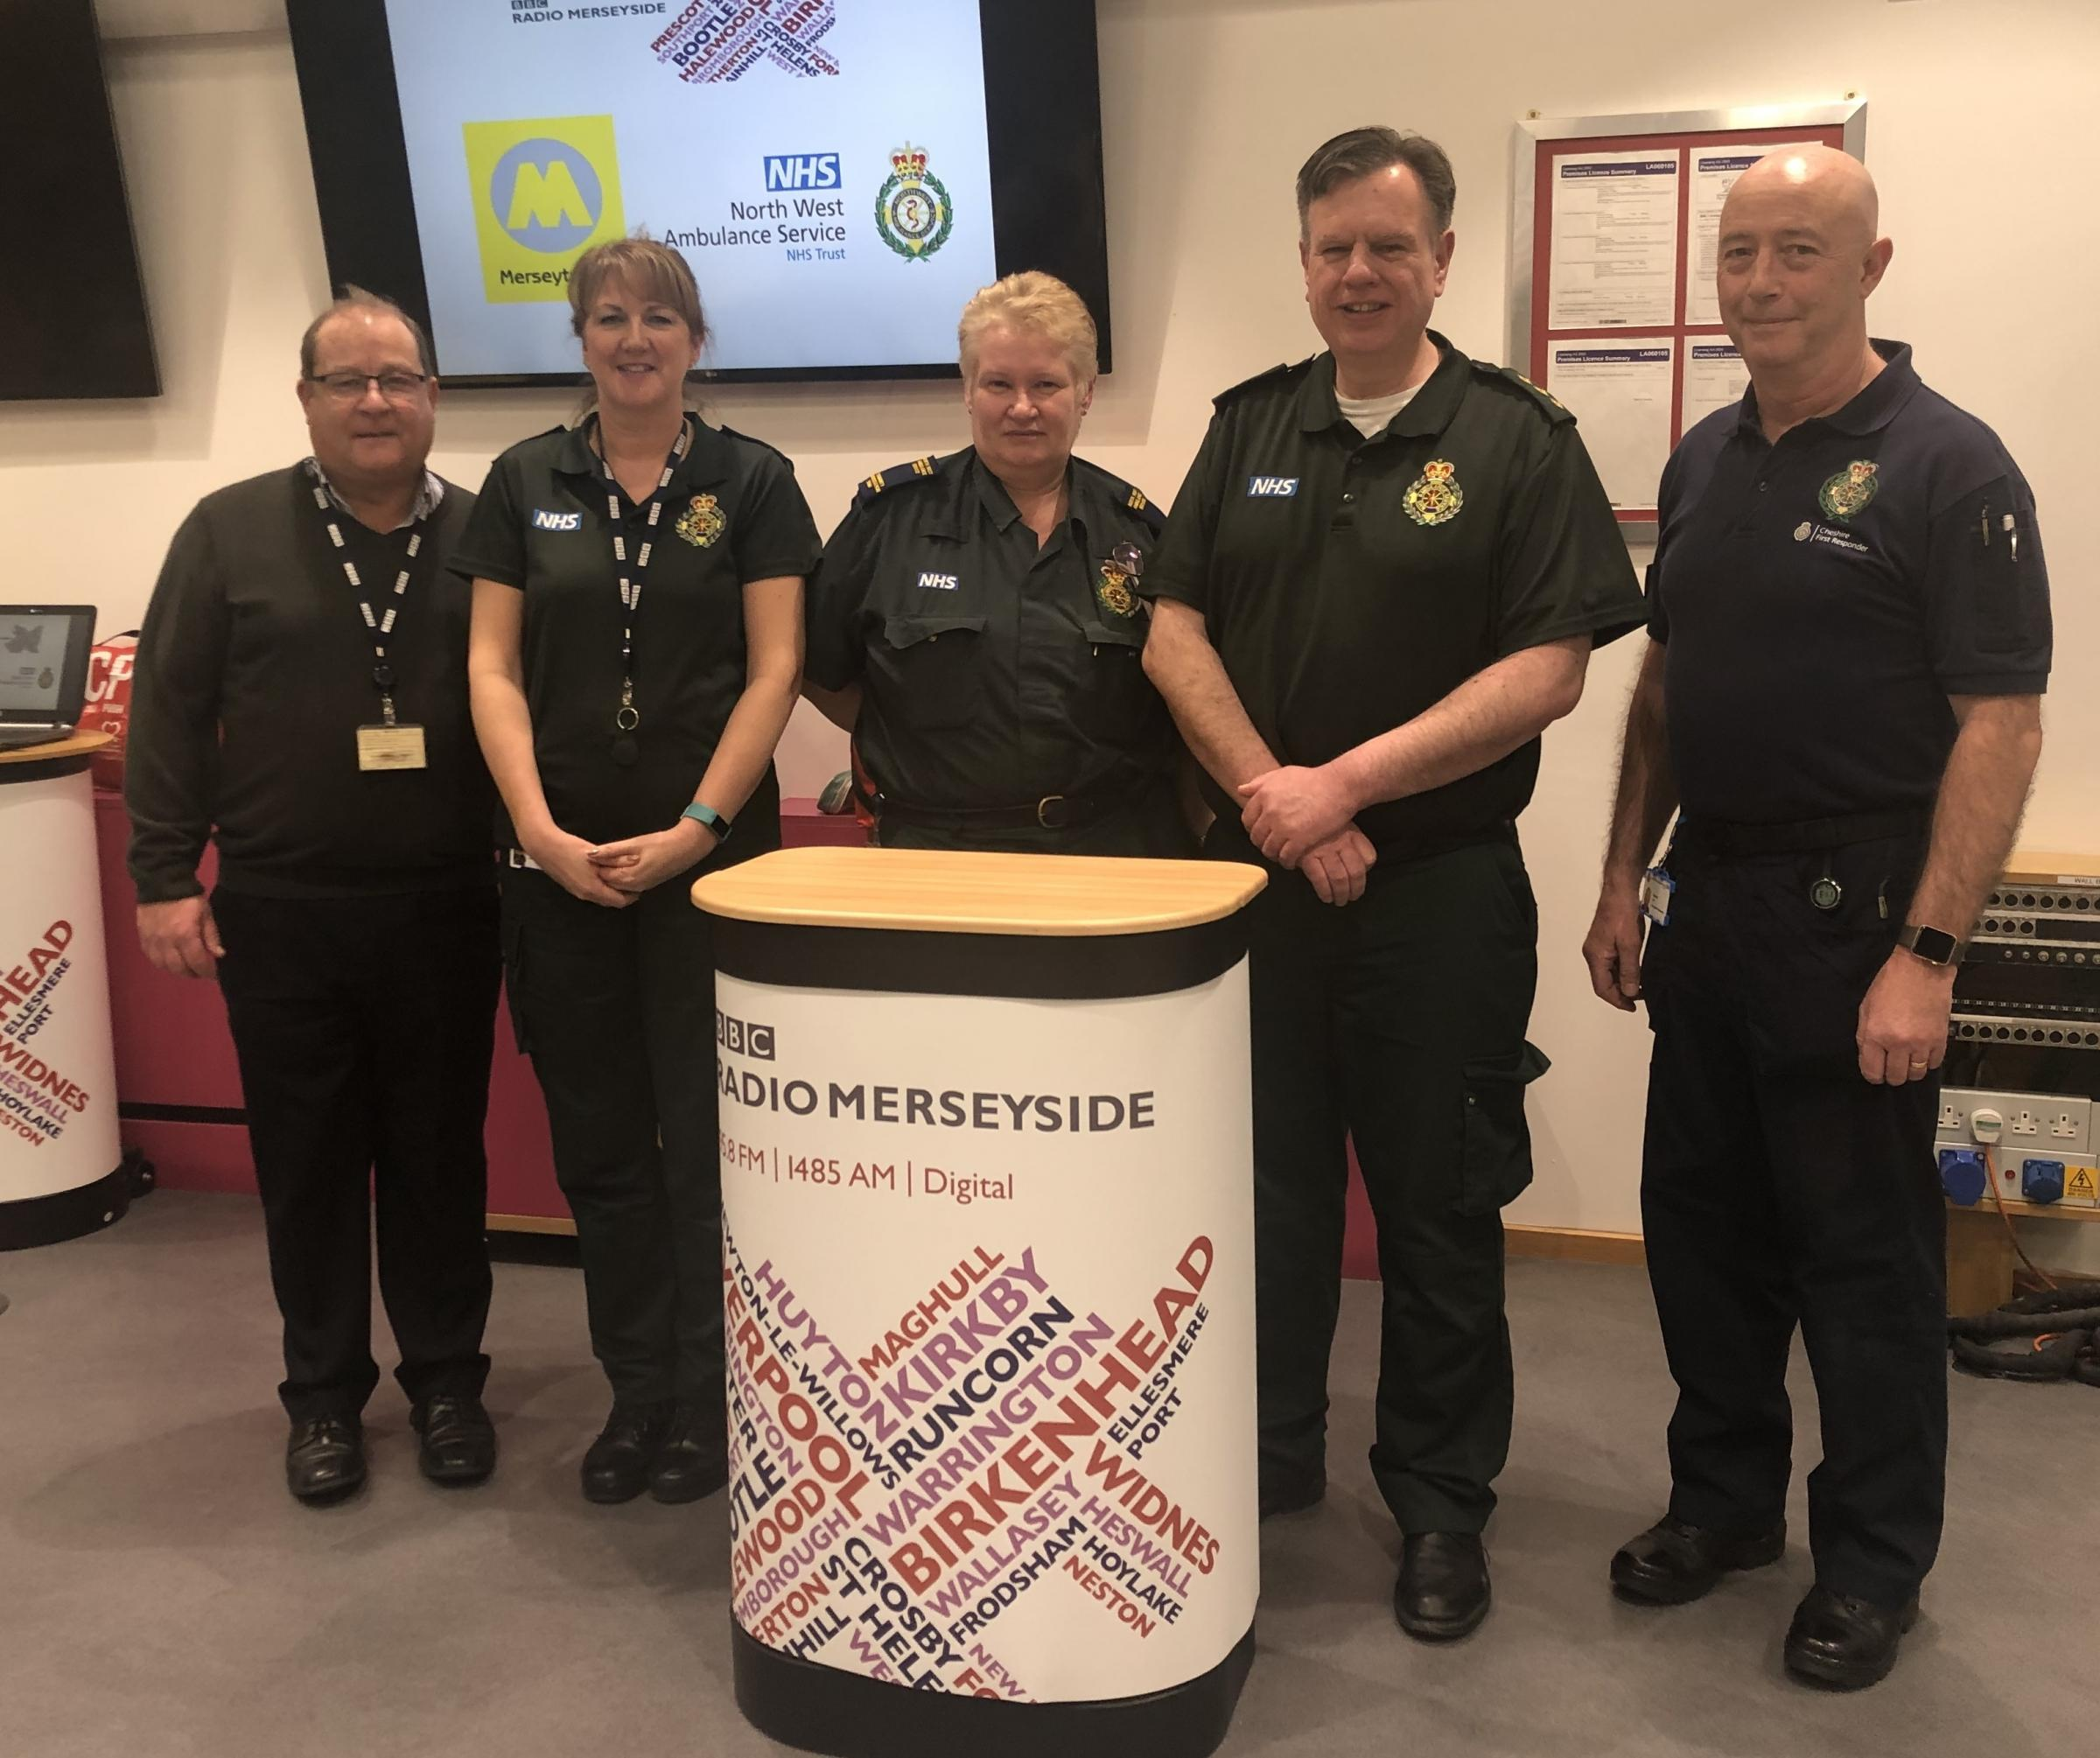 (Left to right) ) Andy Ball, Senior Broadcast Journalist for BBC Radio Merseyside joins the Community Resuscitation Training from North West Ambulance Service at the first CPR training session for the Mersey Heartbeats campaign